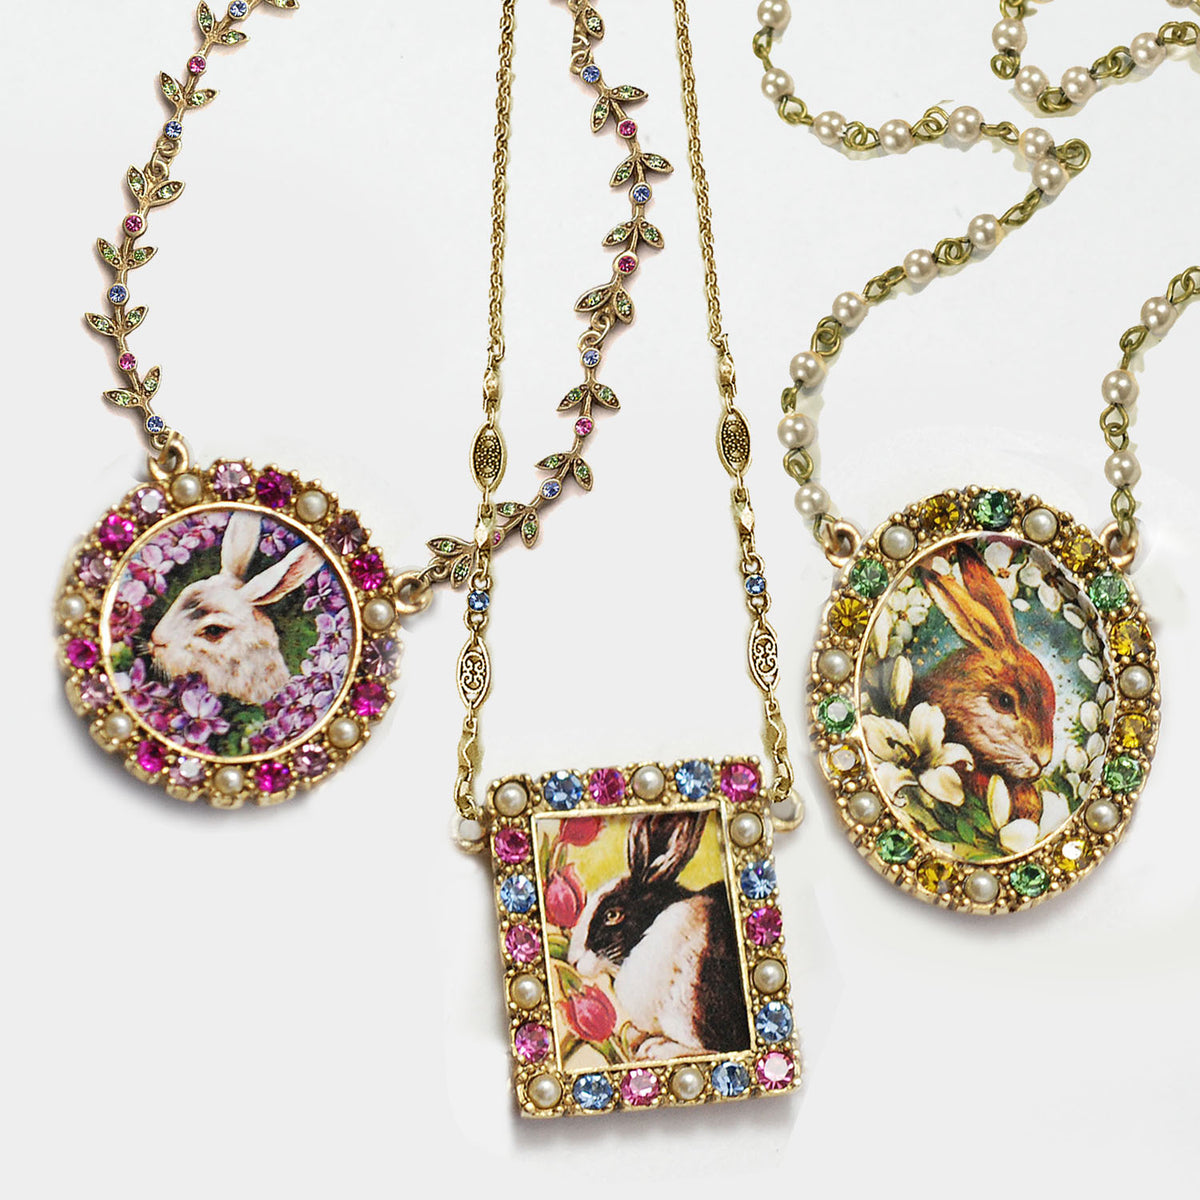 Garden of Bunnies Necklace N1644 - sweetromanceonlinejewelry